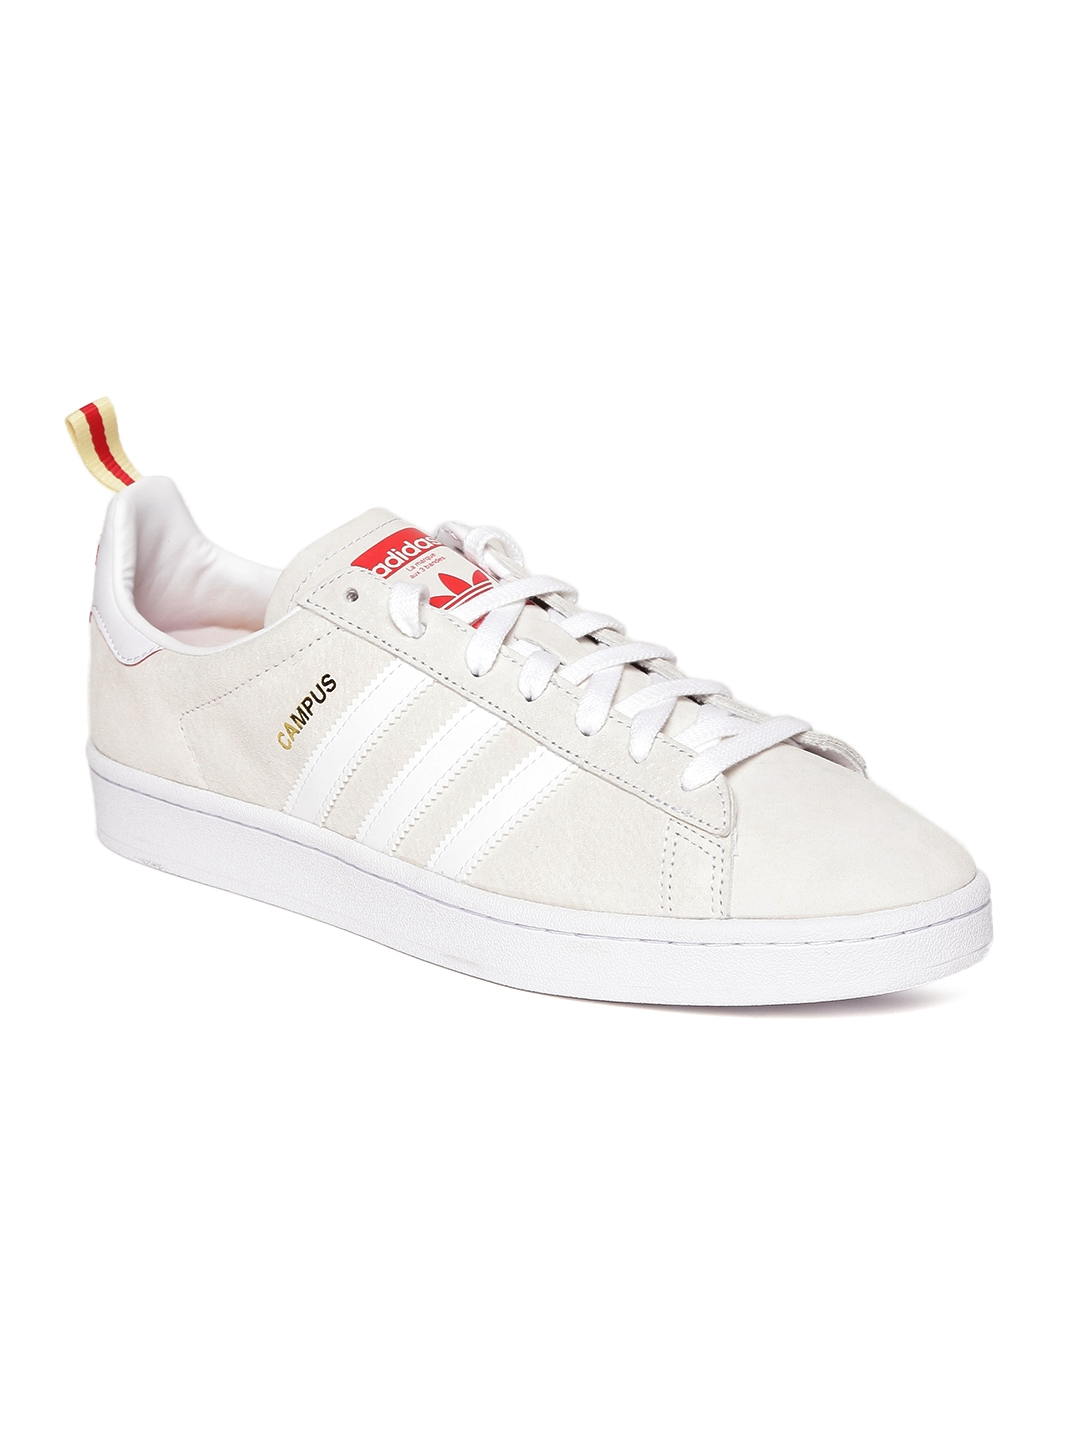 sports shoes 060ed 05612 ADIDAS Originals Men Off-White Campus CNY Leather Sneakers